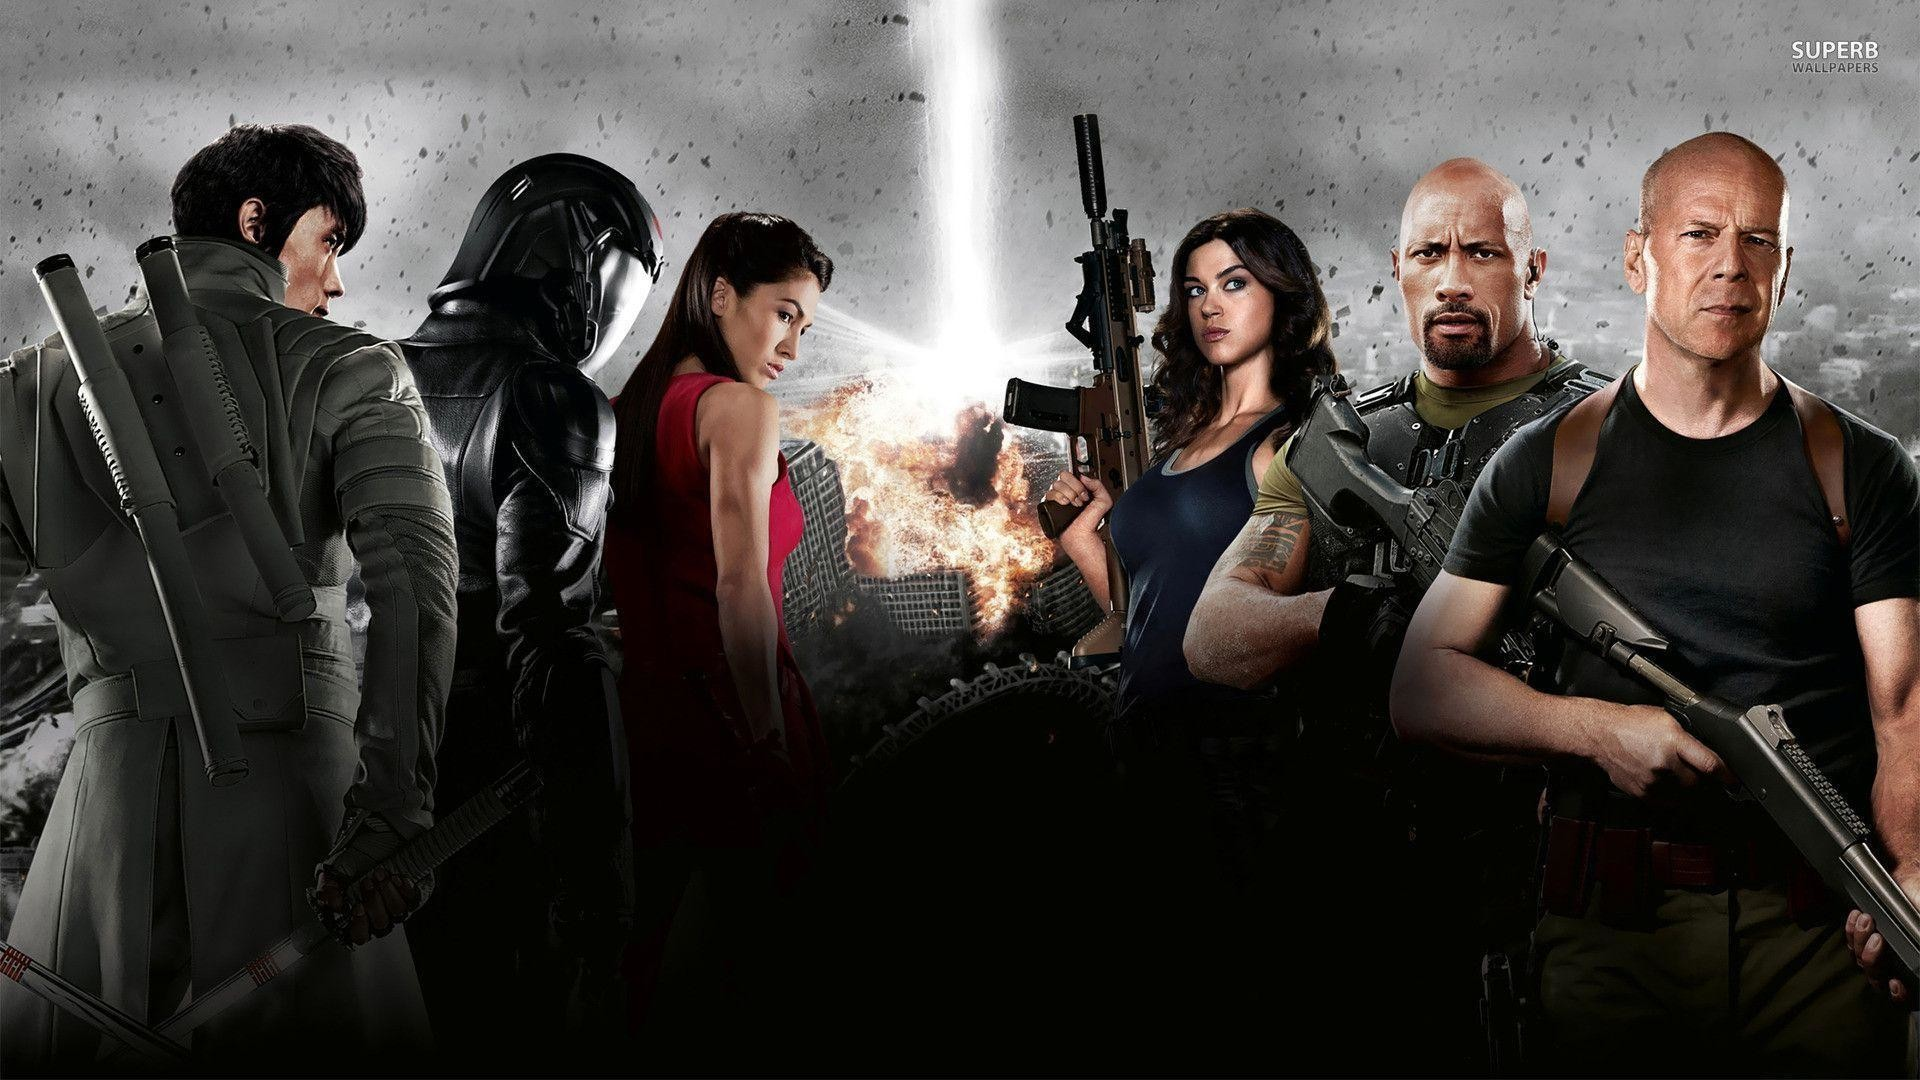 1920x1080 G.I. Joe: Retaliation wallpaper - Movie wallpapers - #